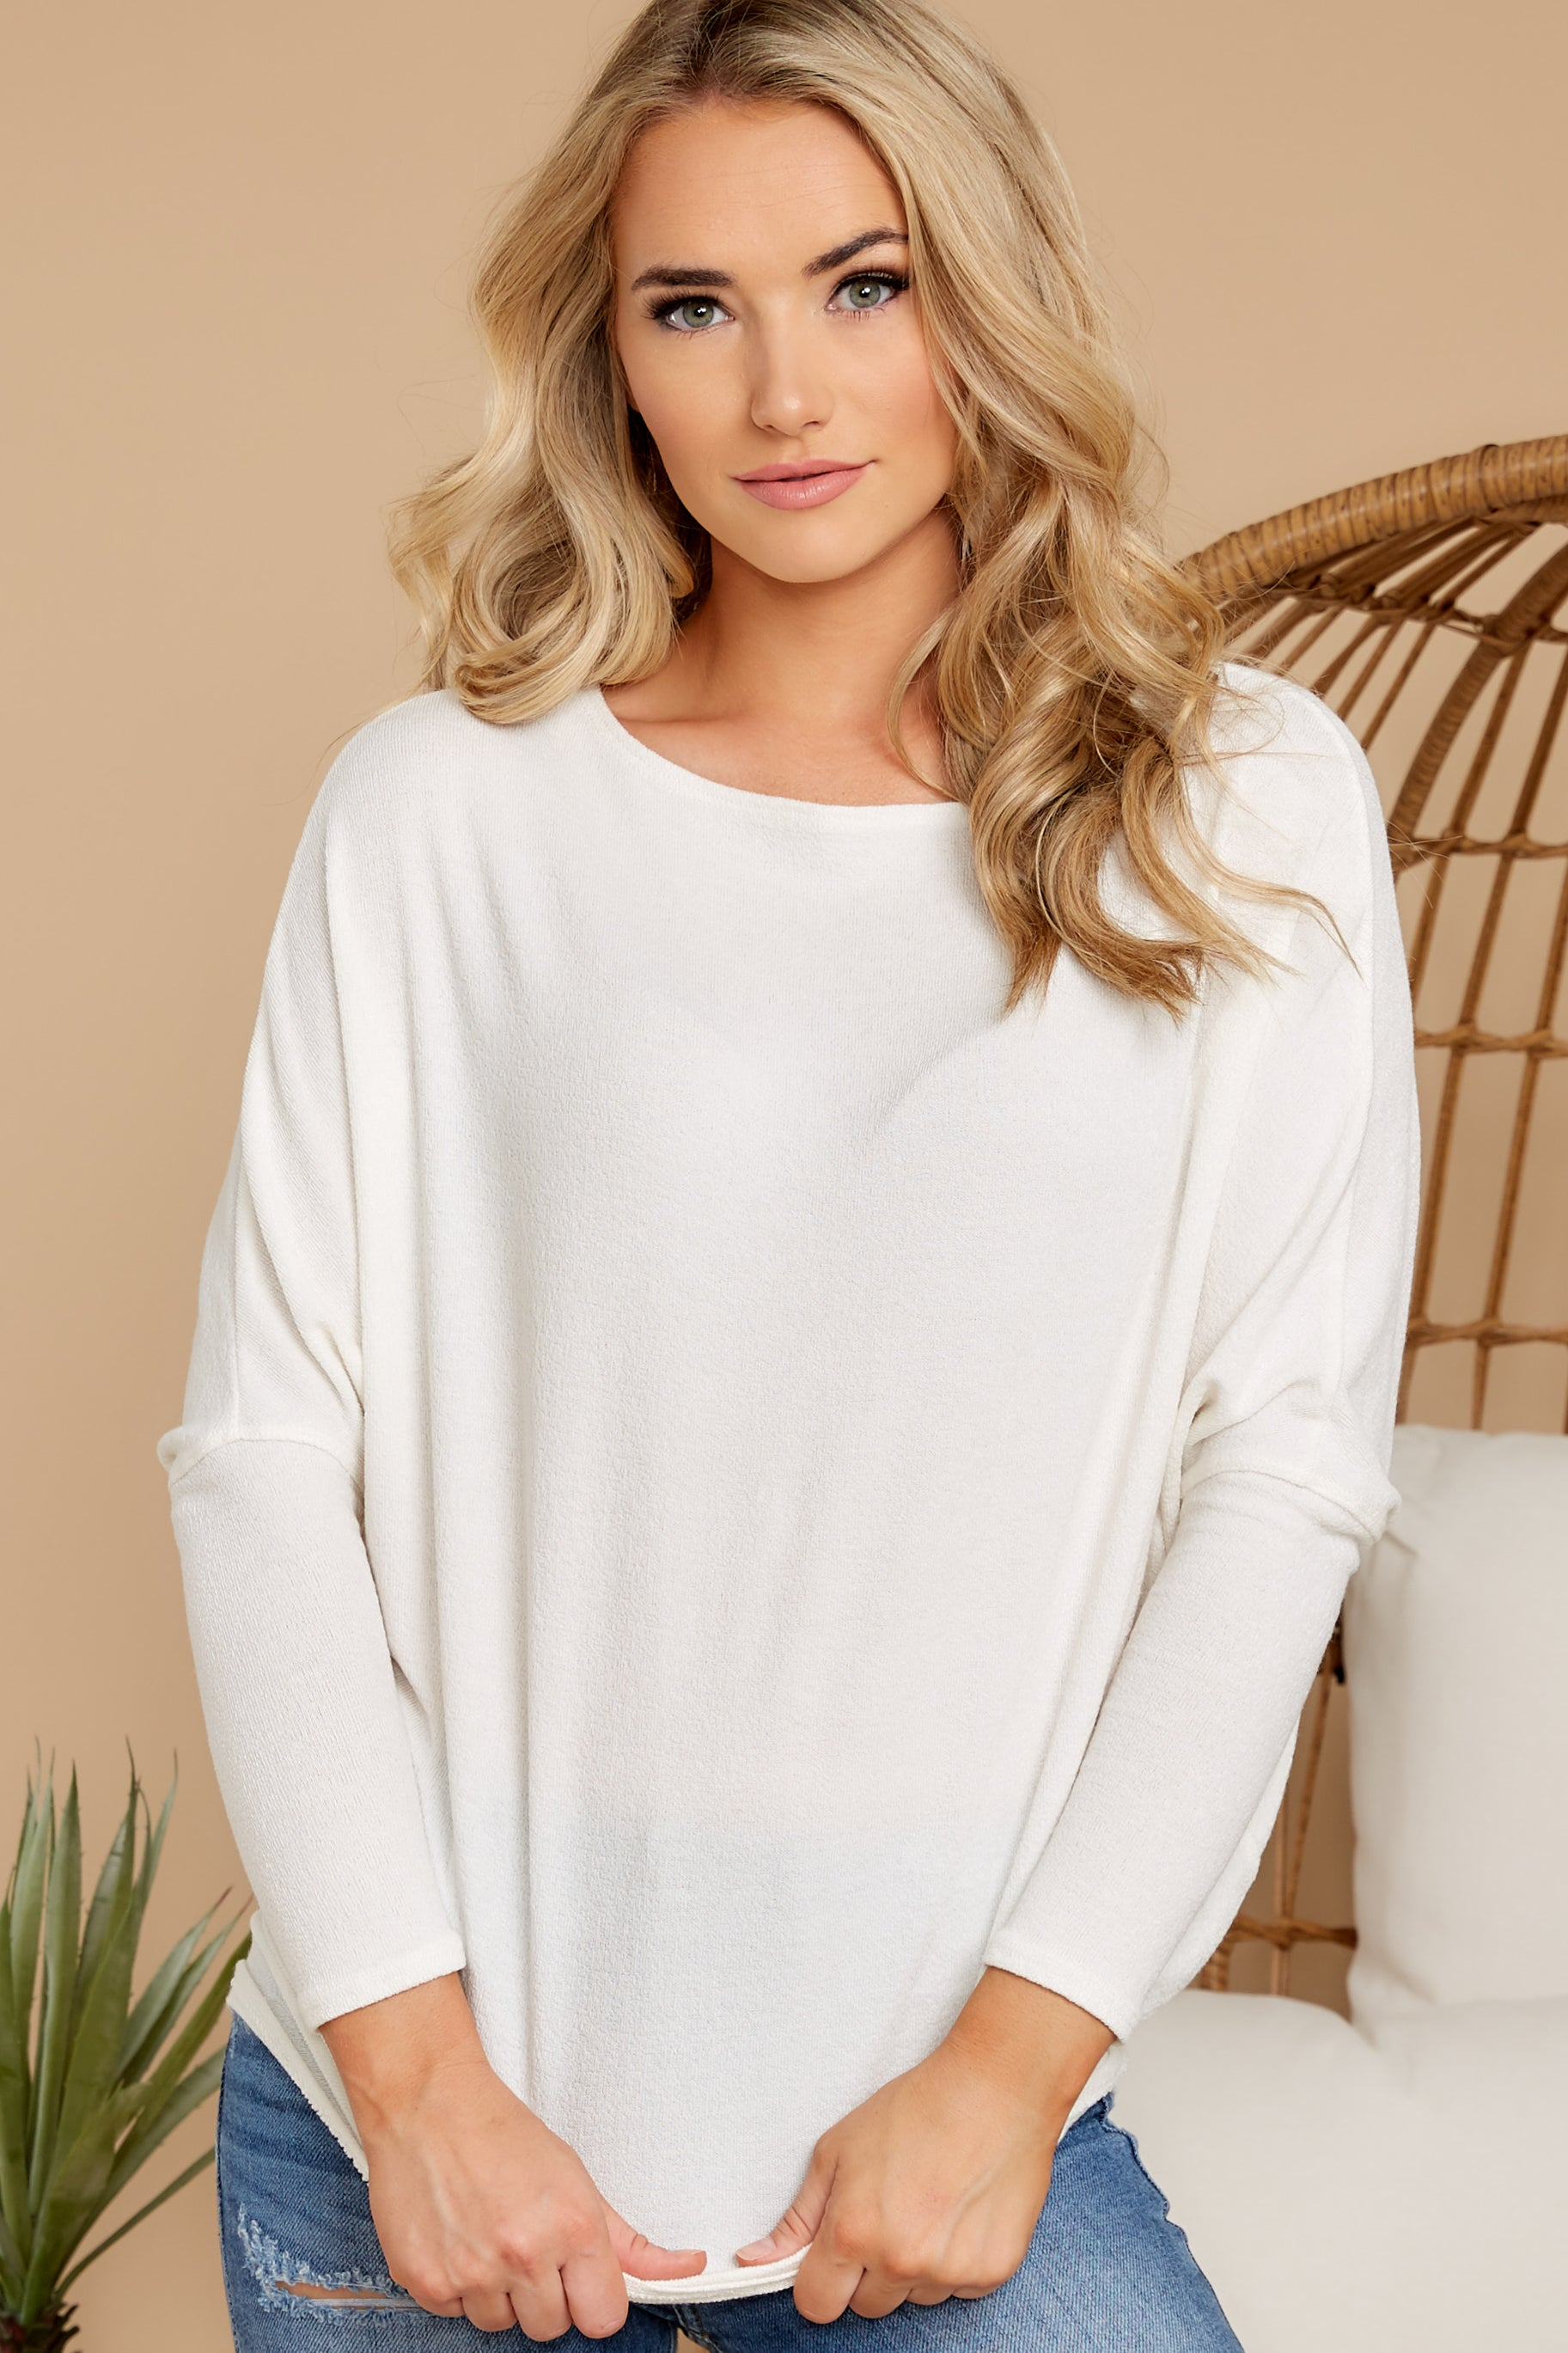 3 Like A Melody Ivory Tunic Top at reddress.com